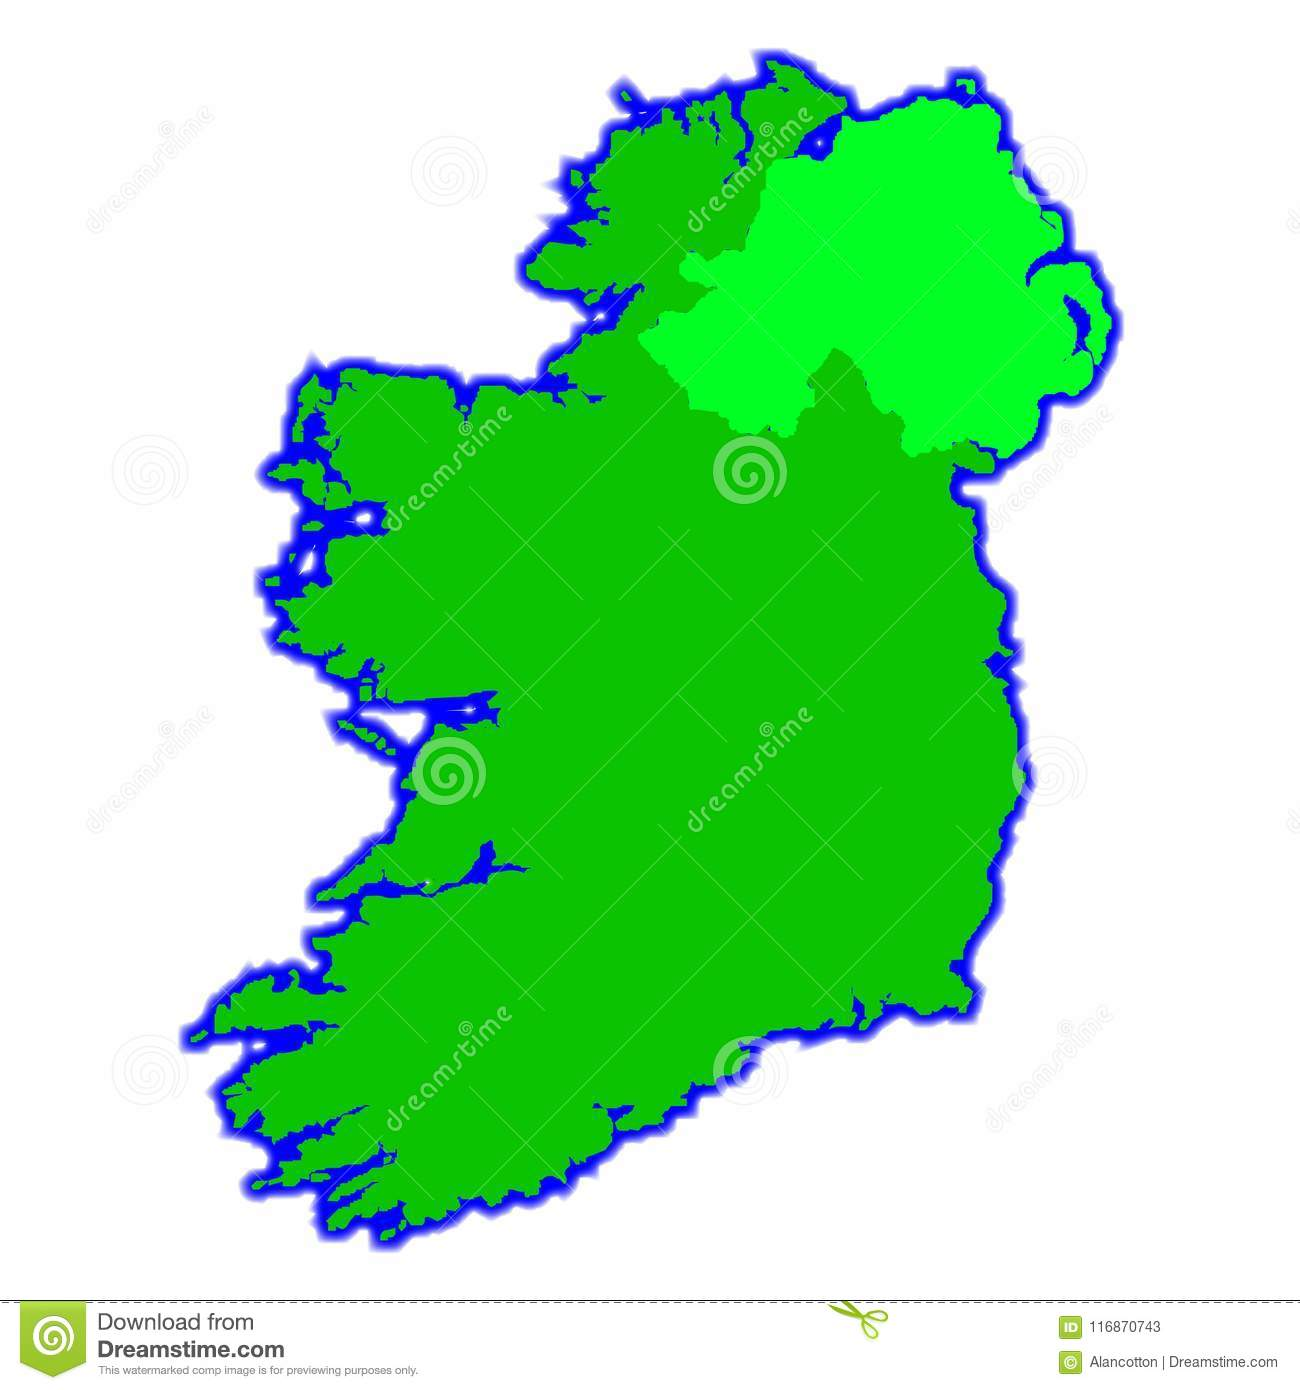 South Of Ireland Map.The Emerald Isle Map Of Ireland Over A White Background Stock Vector